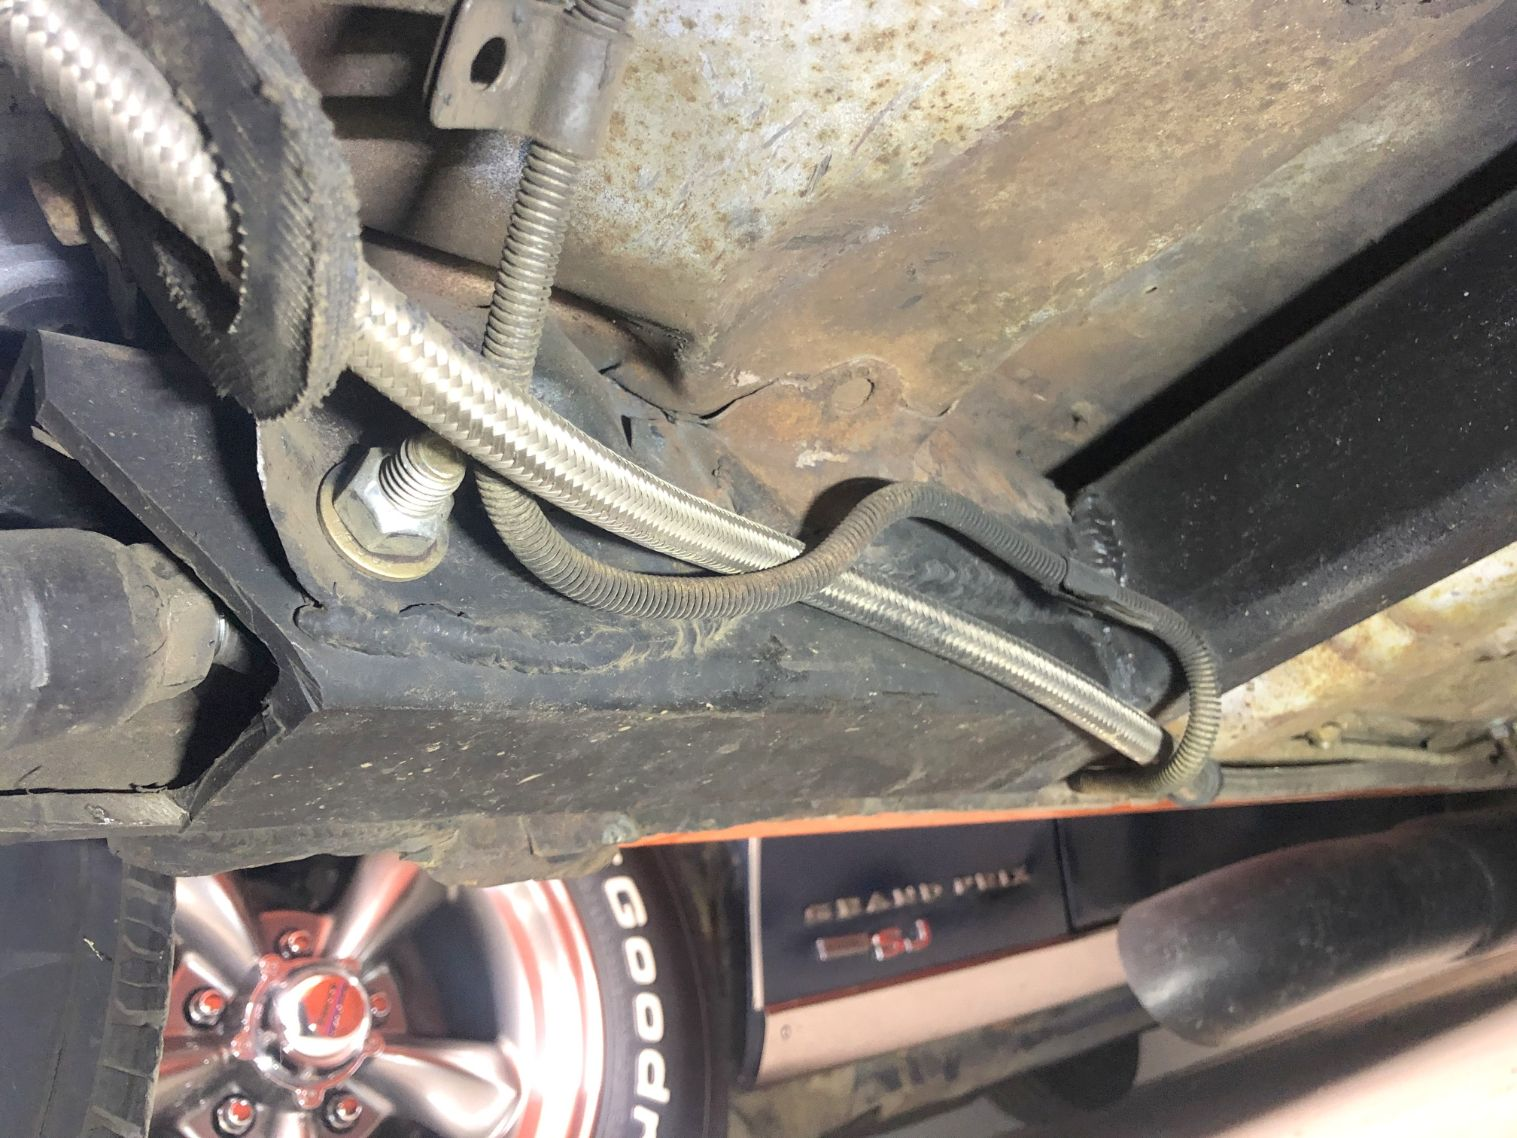 Vega lower control arm resized.jpg